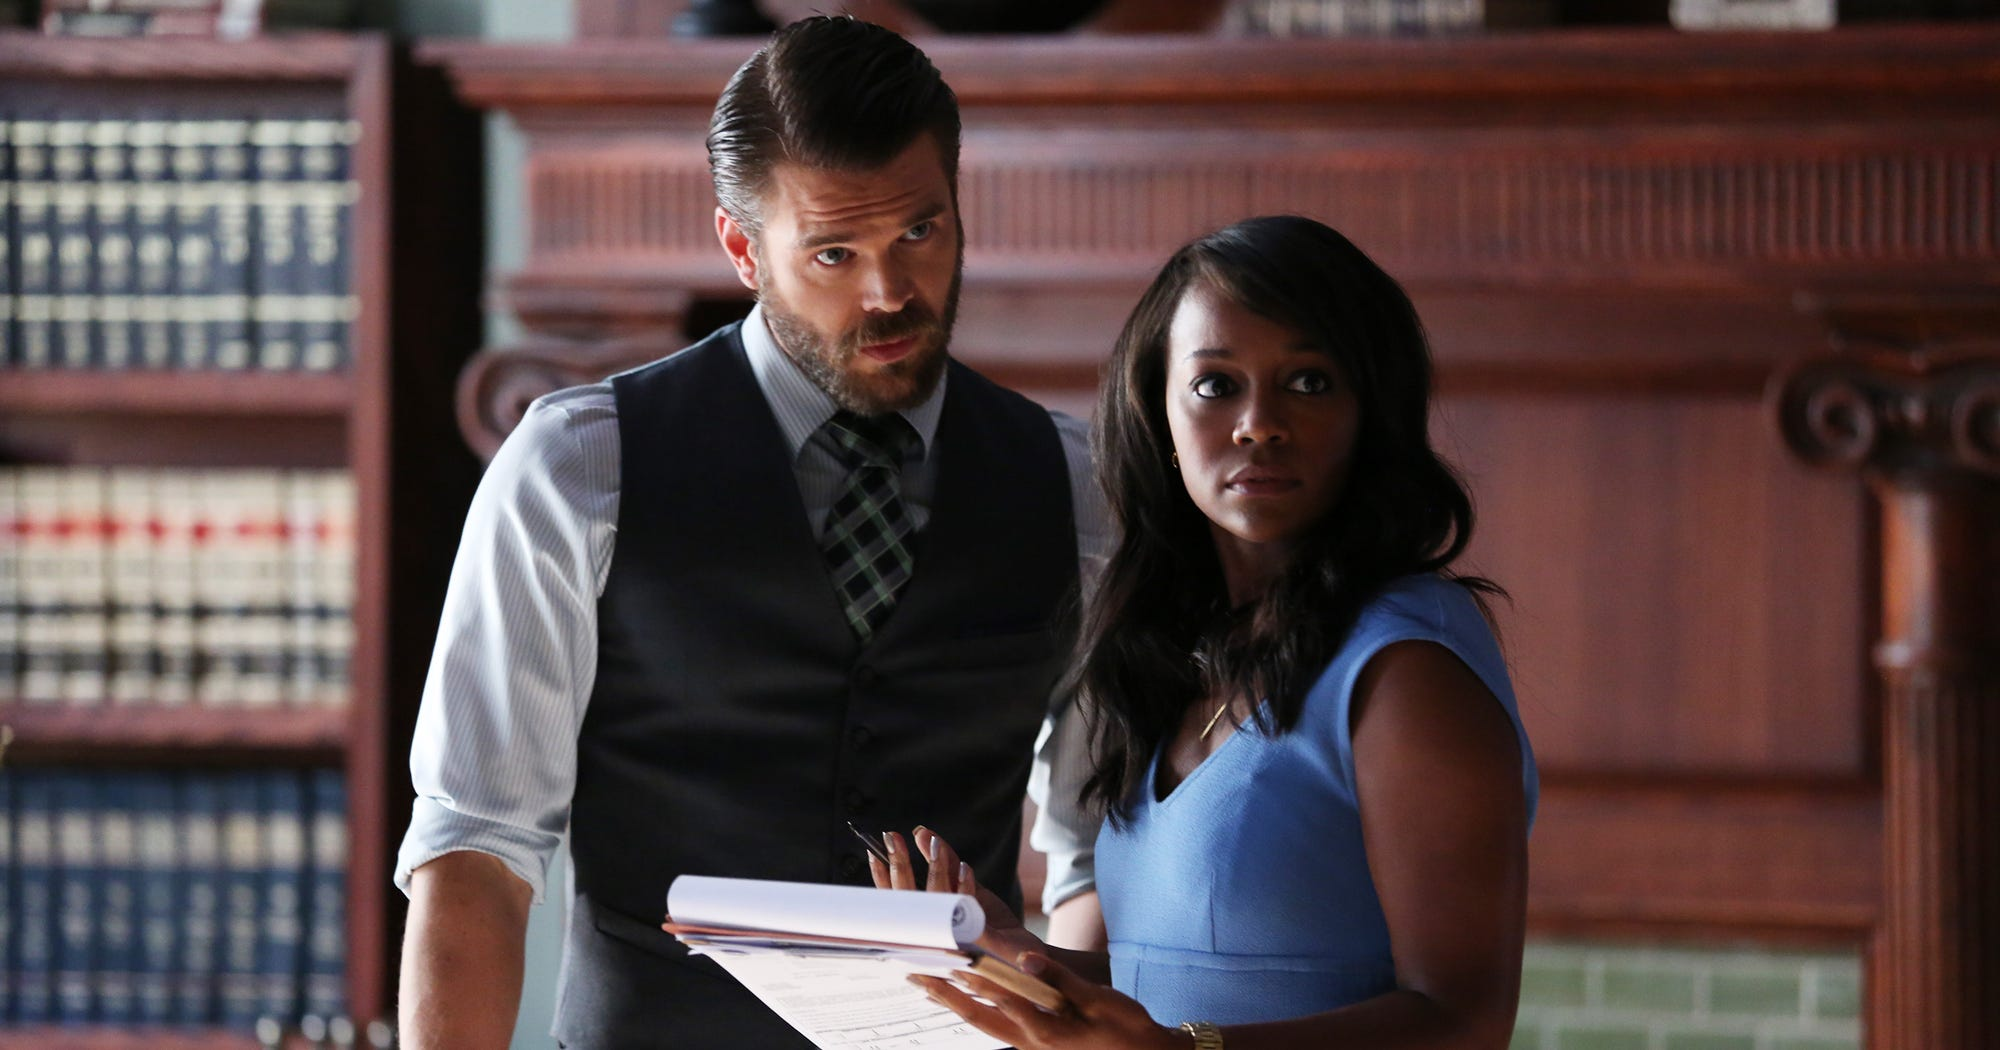 Nate and annalise sex scene how to get away with murder season 1 episode 9 all scenes gtgt httpbitly2tf3rqe - 5 8